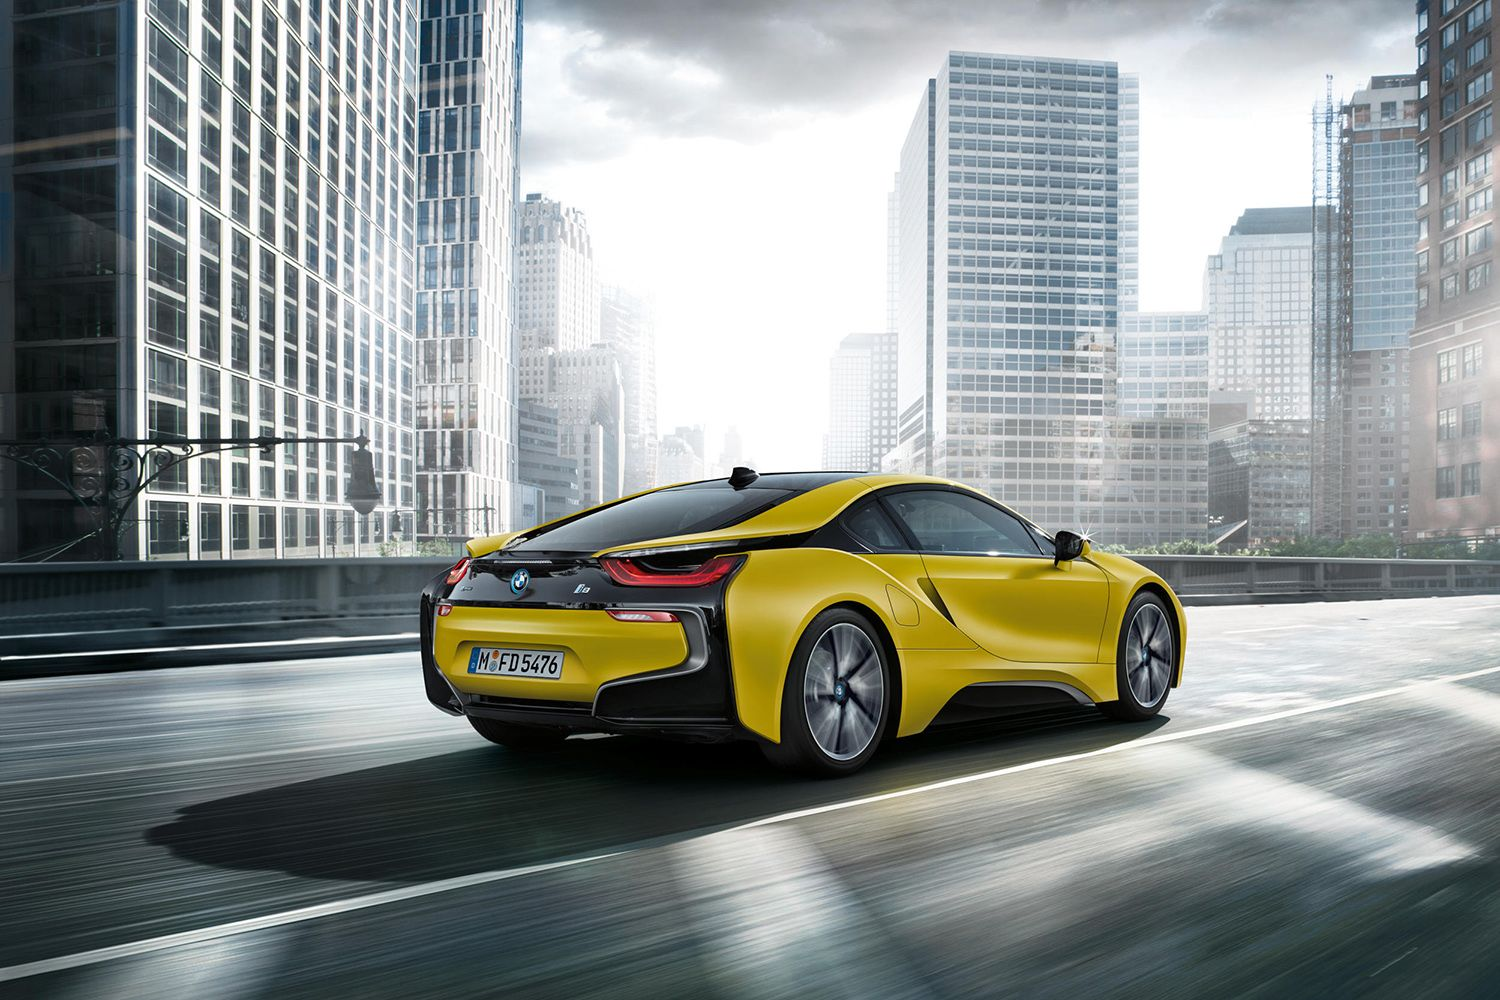 Bmw I8 Gets New Protonic Frozen Black And Frozen Yellow Paint